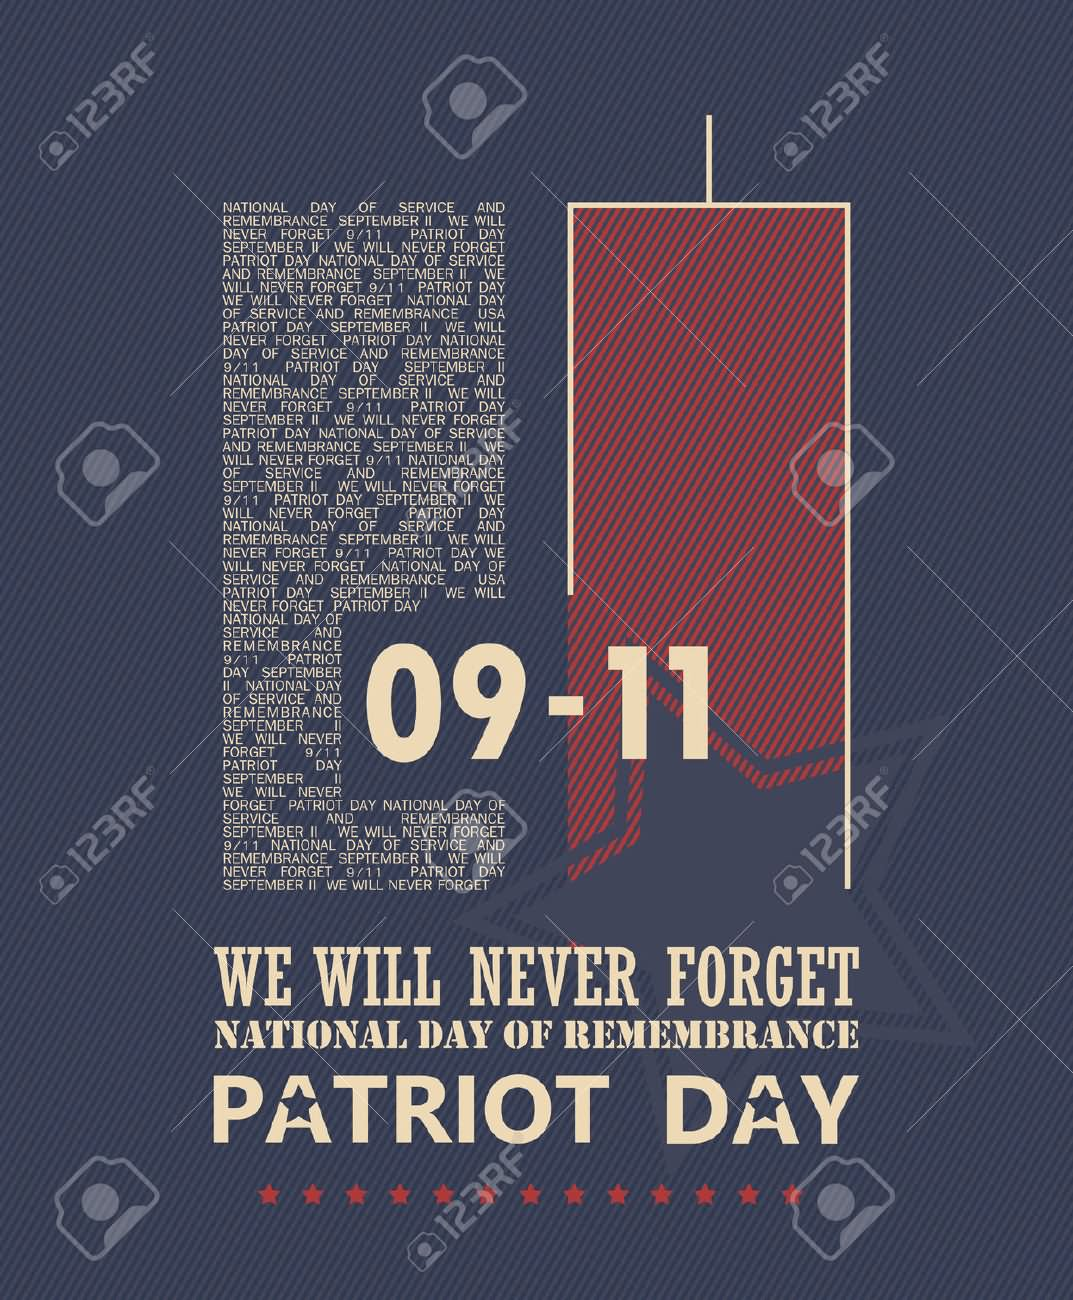 9-11 We Will Never Forget National Day Of Remembrance Patriot Day